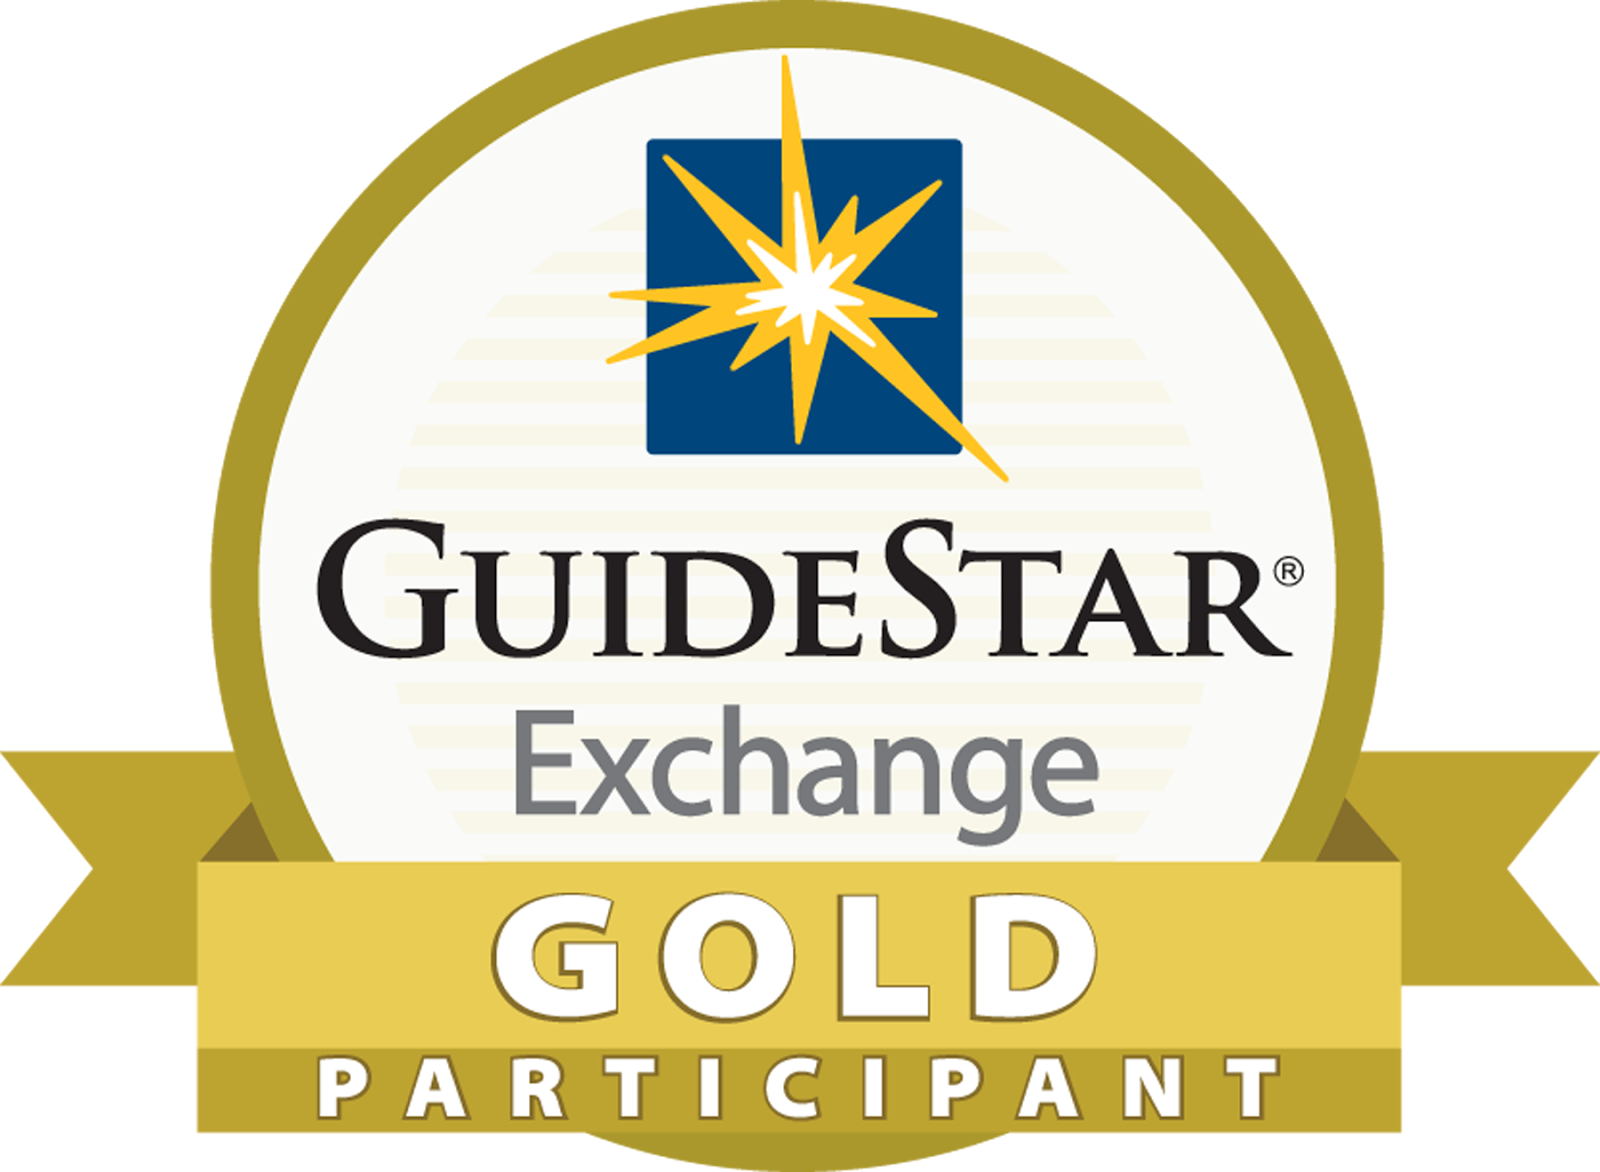 Guidestar Gold Participant